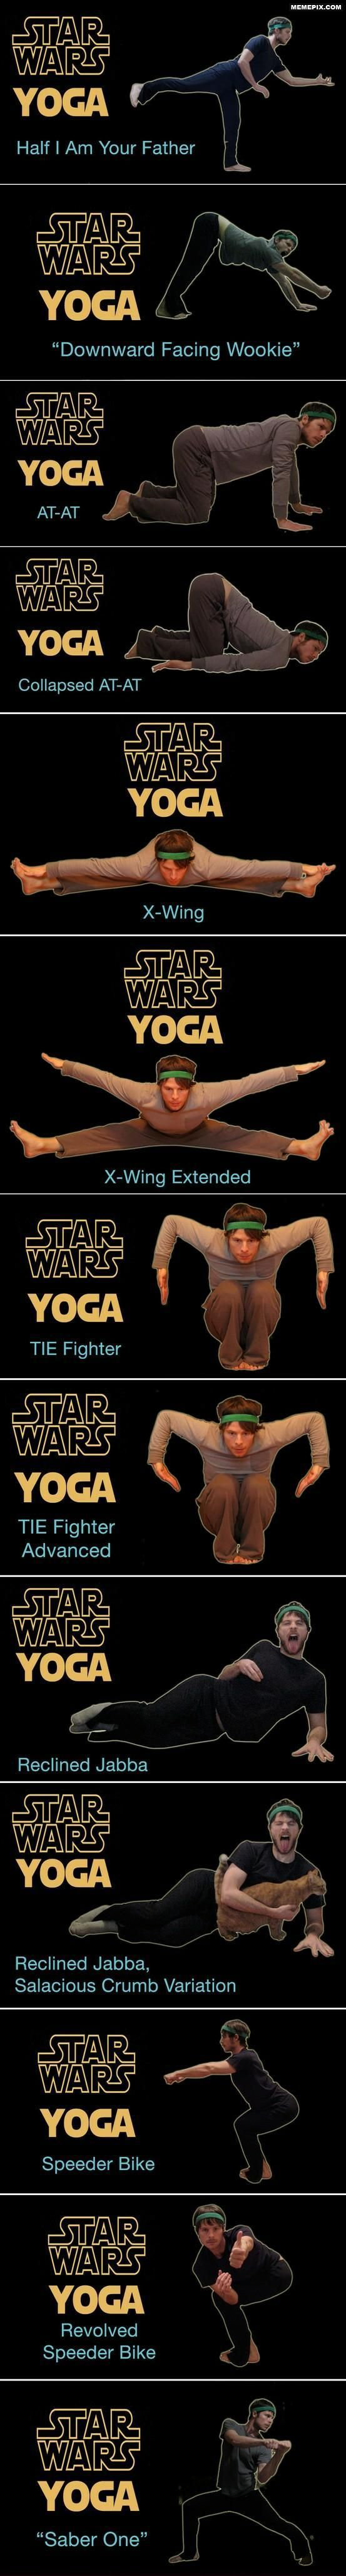 Star Wars Yoga-LOL!